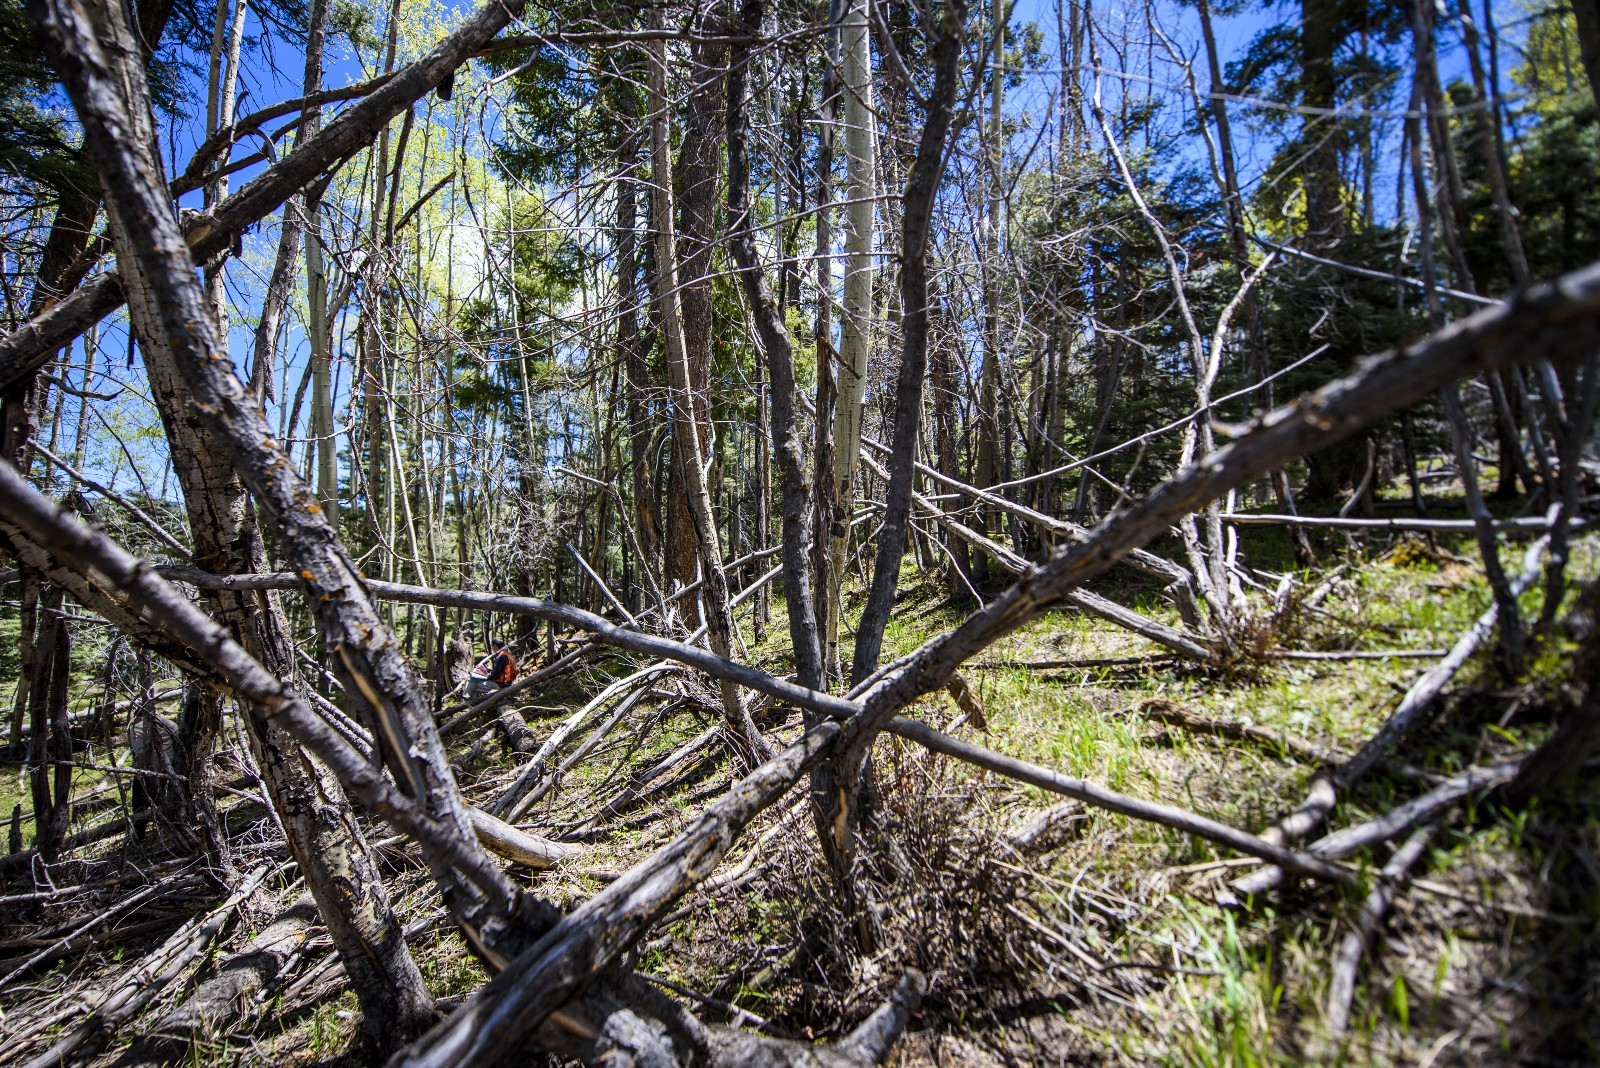 Abnormally fallen trees discovered in the forest of the Chelyabinsk region